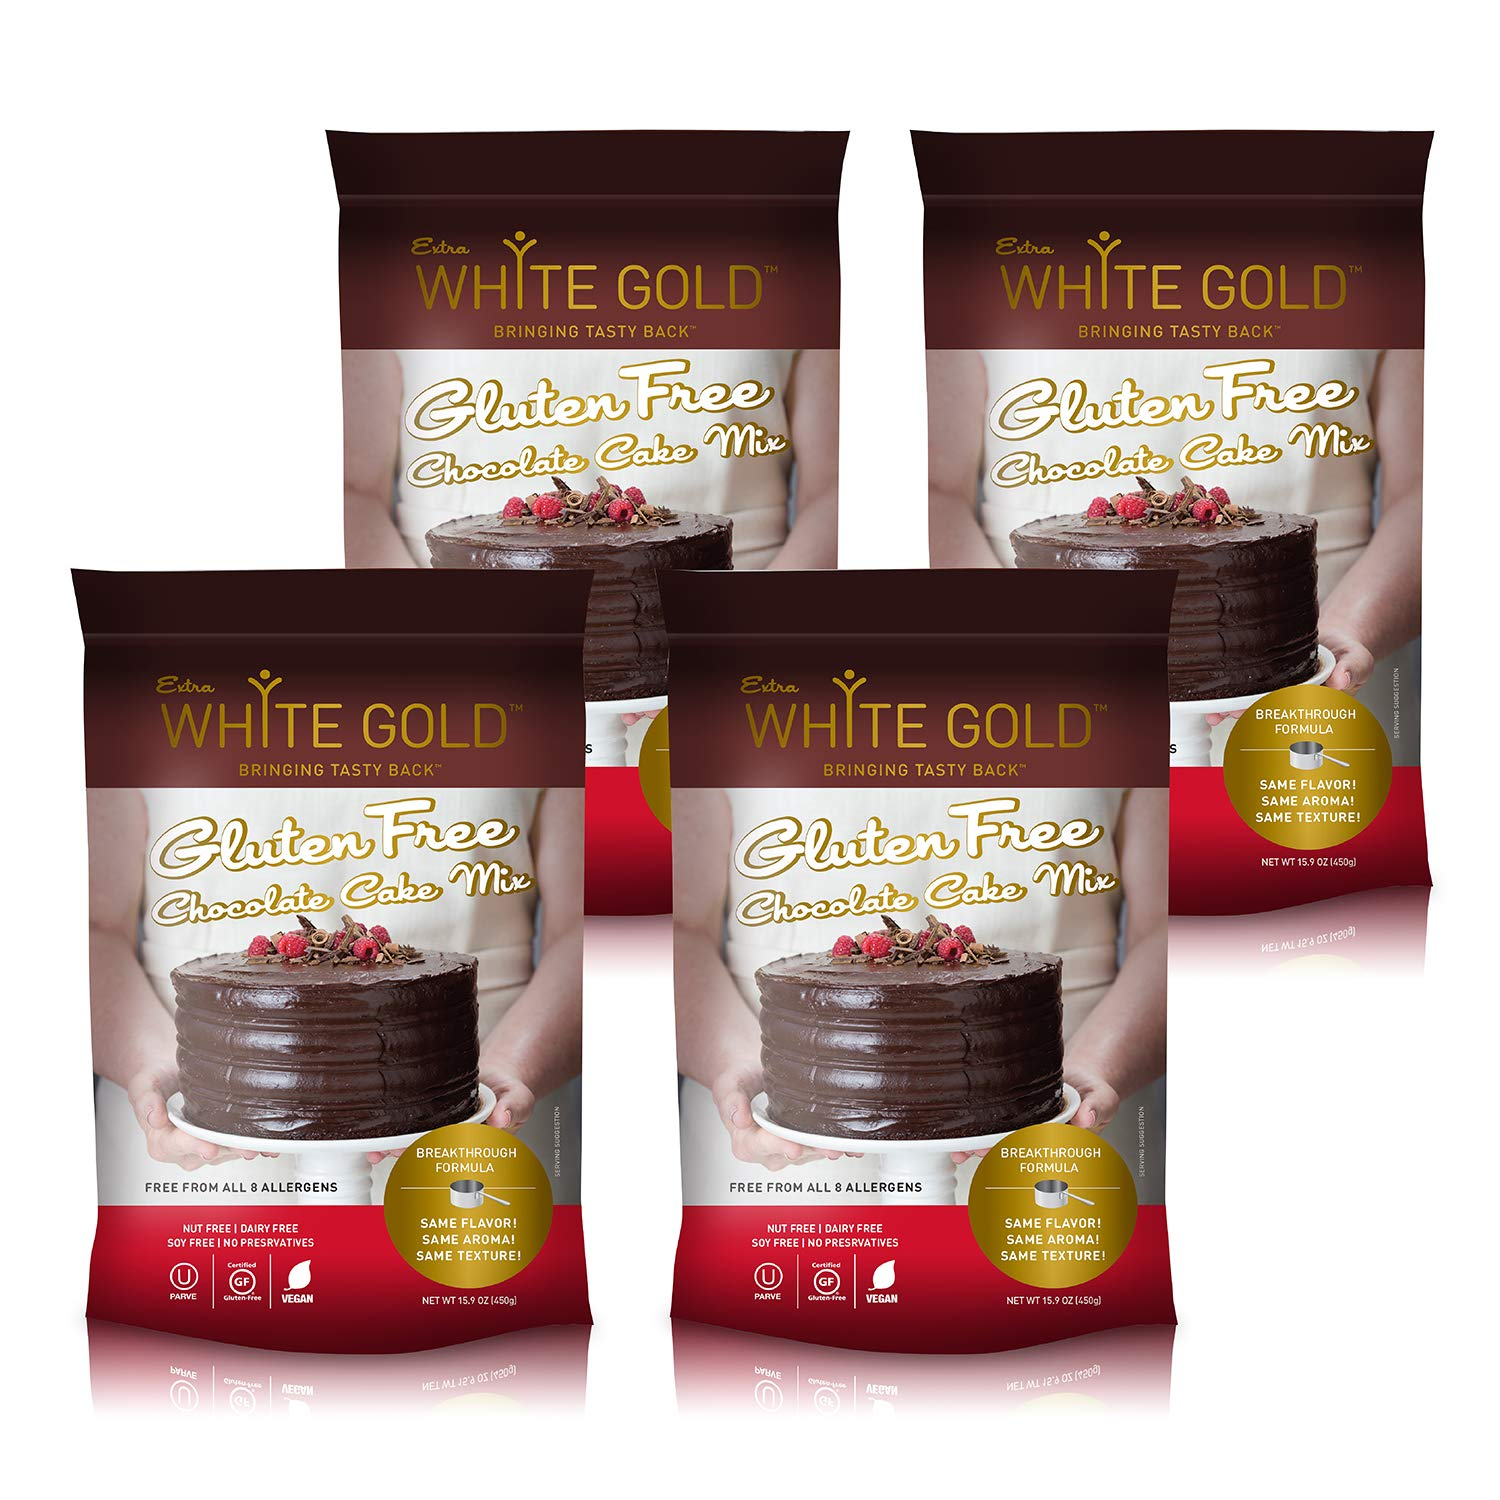 Extra White Gold Gluten Free Chocolate Cake Mix - For Baking Cakes Cupcakes Desserts - [Kosher] [Gluten Free] [Vegan] [Soy Free] [Nut Free] [Dairy Free] - 15.9 Ounces (4 pack) by Extra White Gold